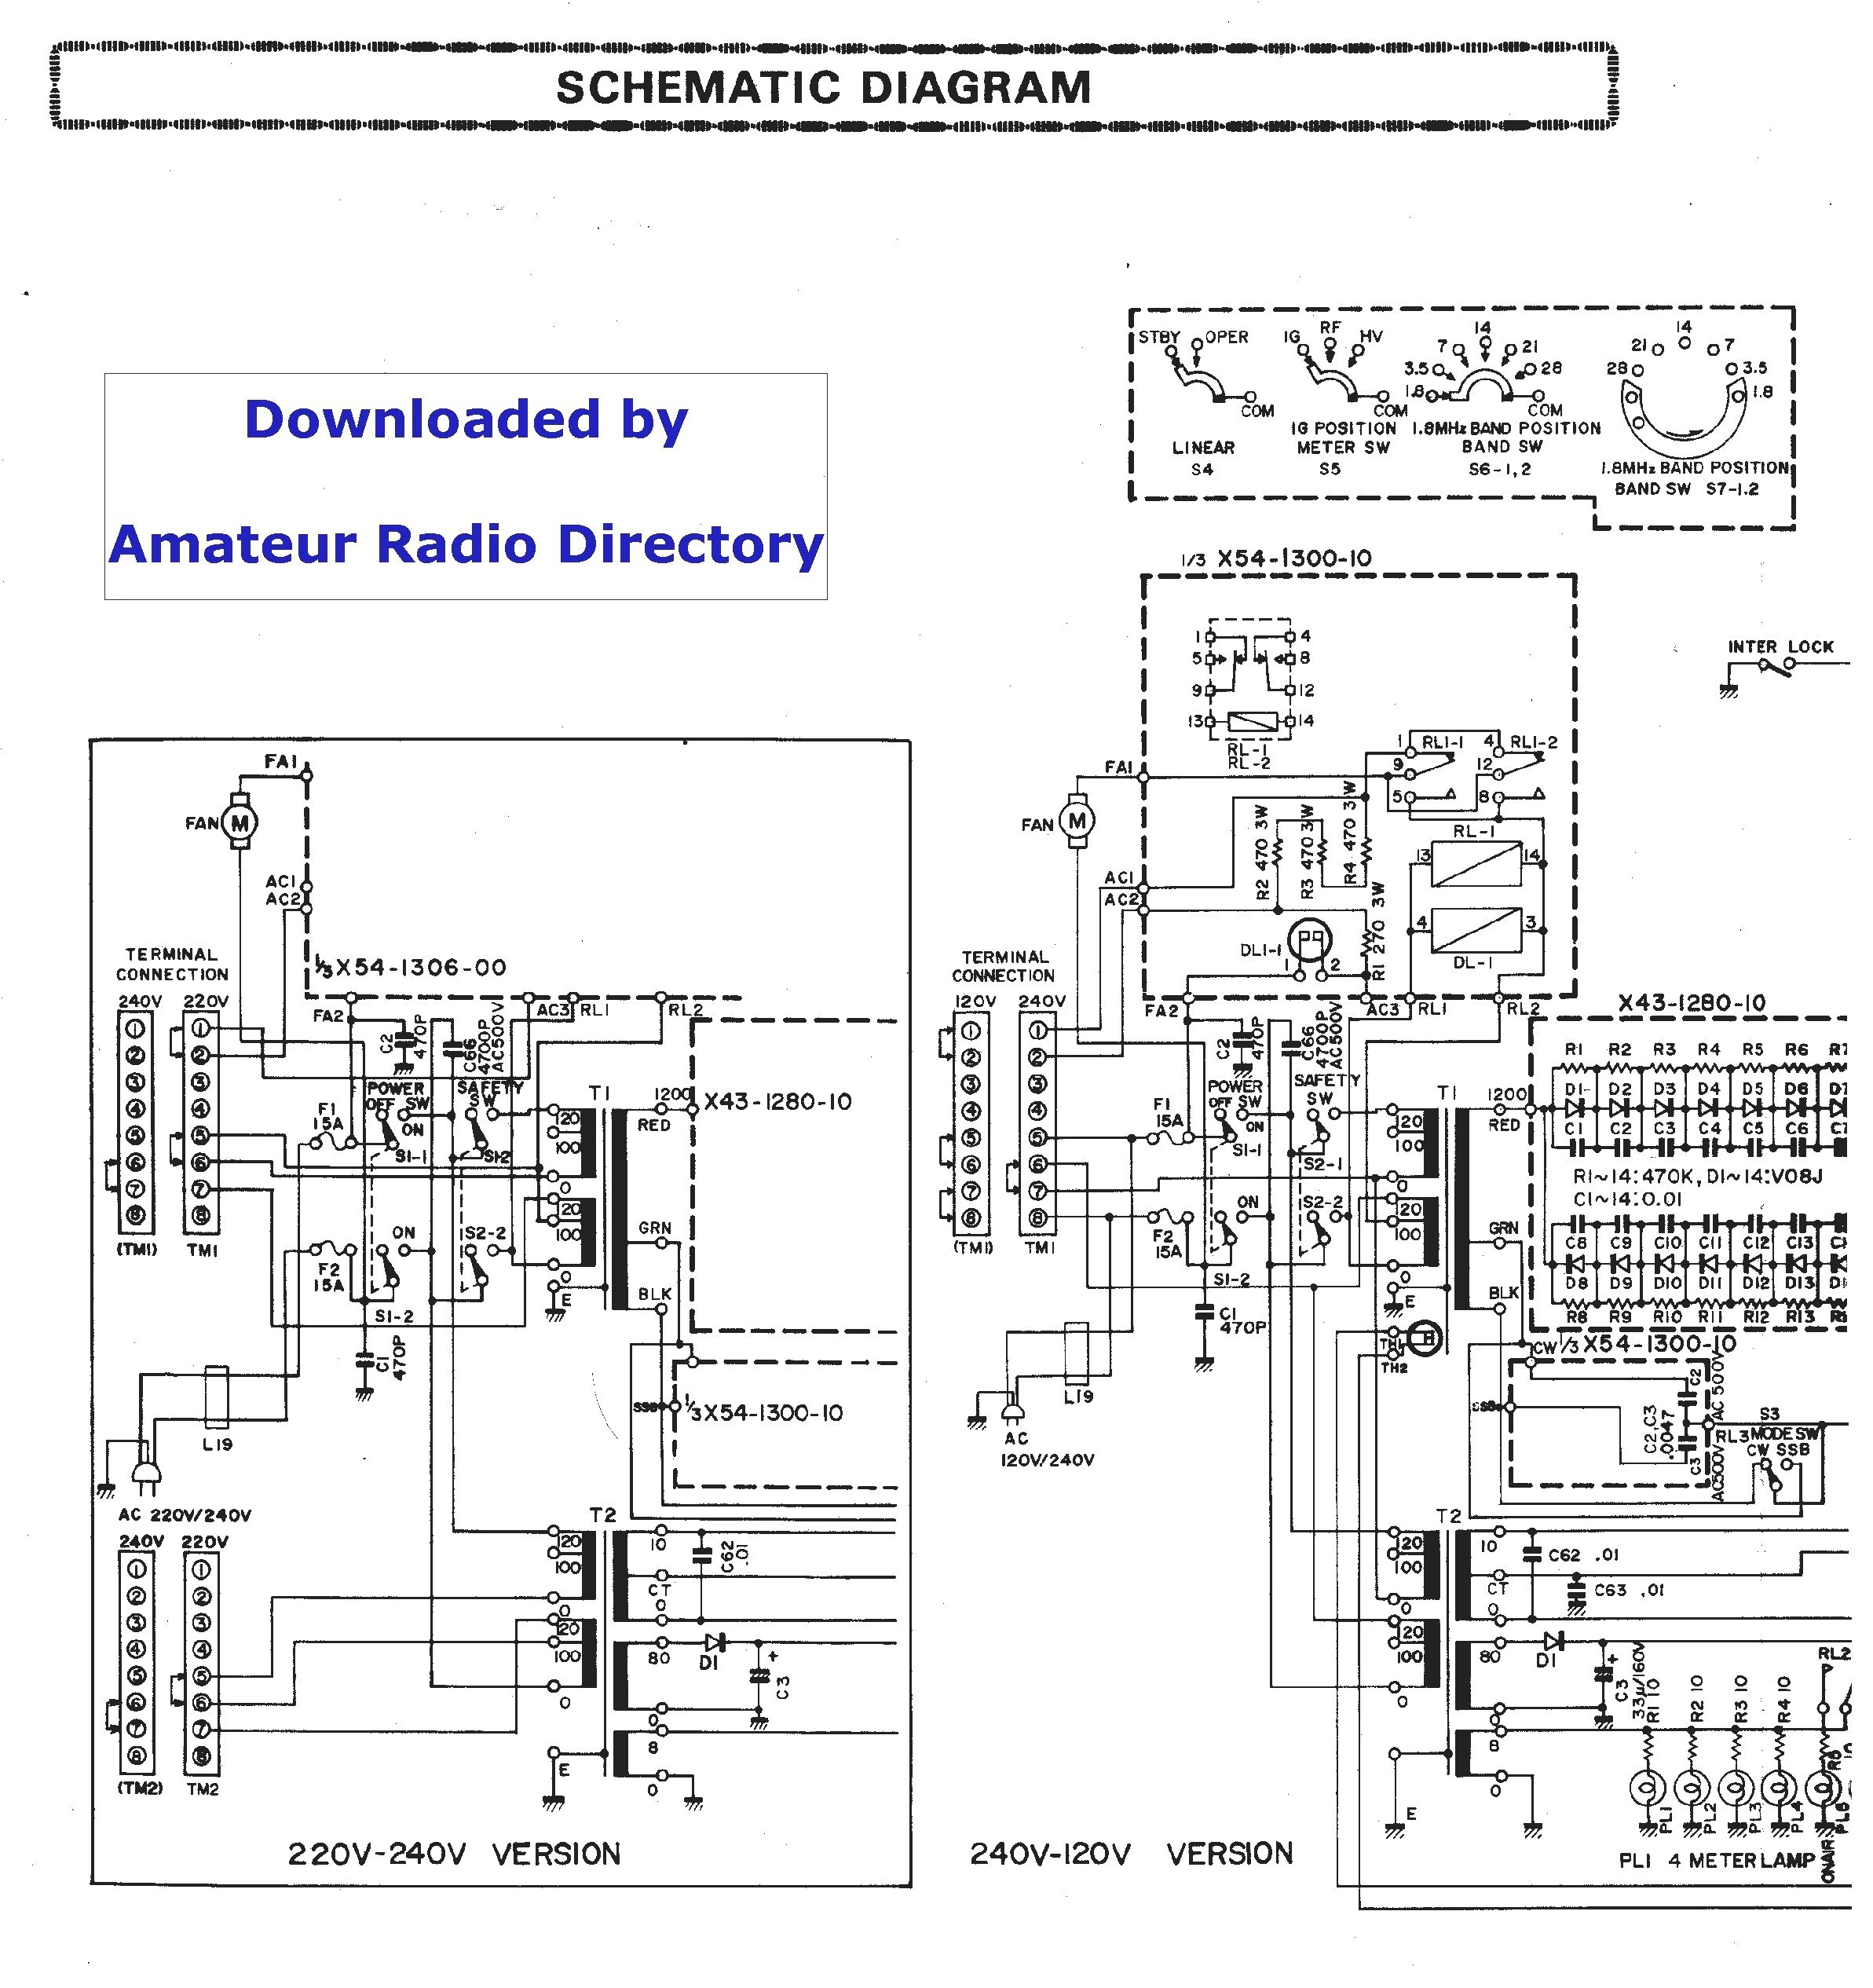 Wire Diagram Kenwood Kdc 210U | Manual E-Books - Kenwood Kdc-210U Wiring Diagram